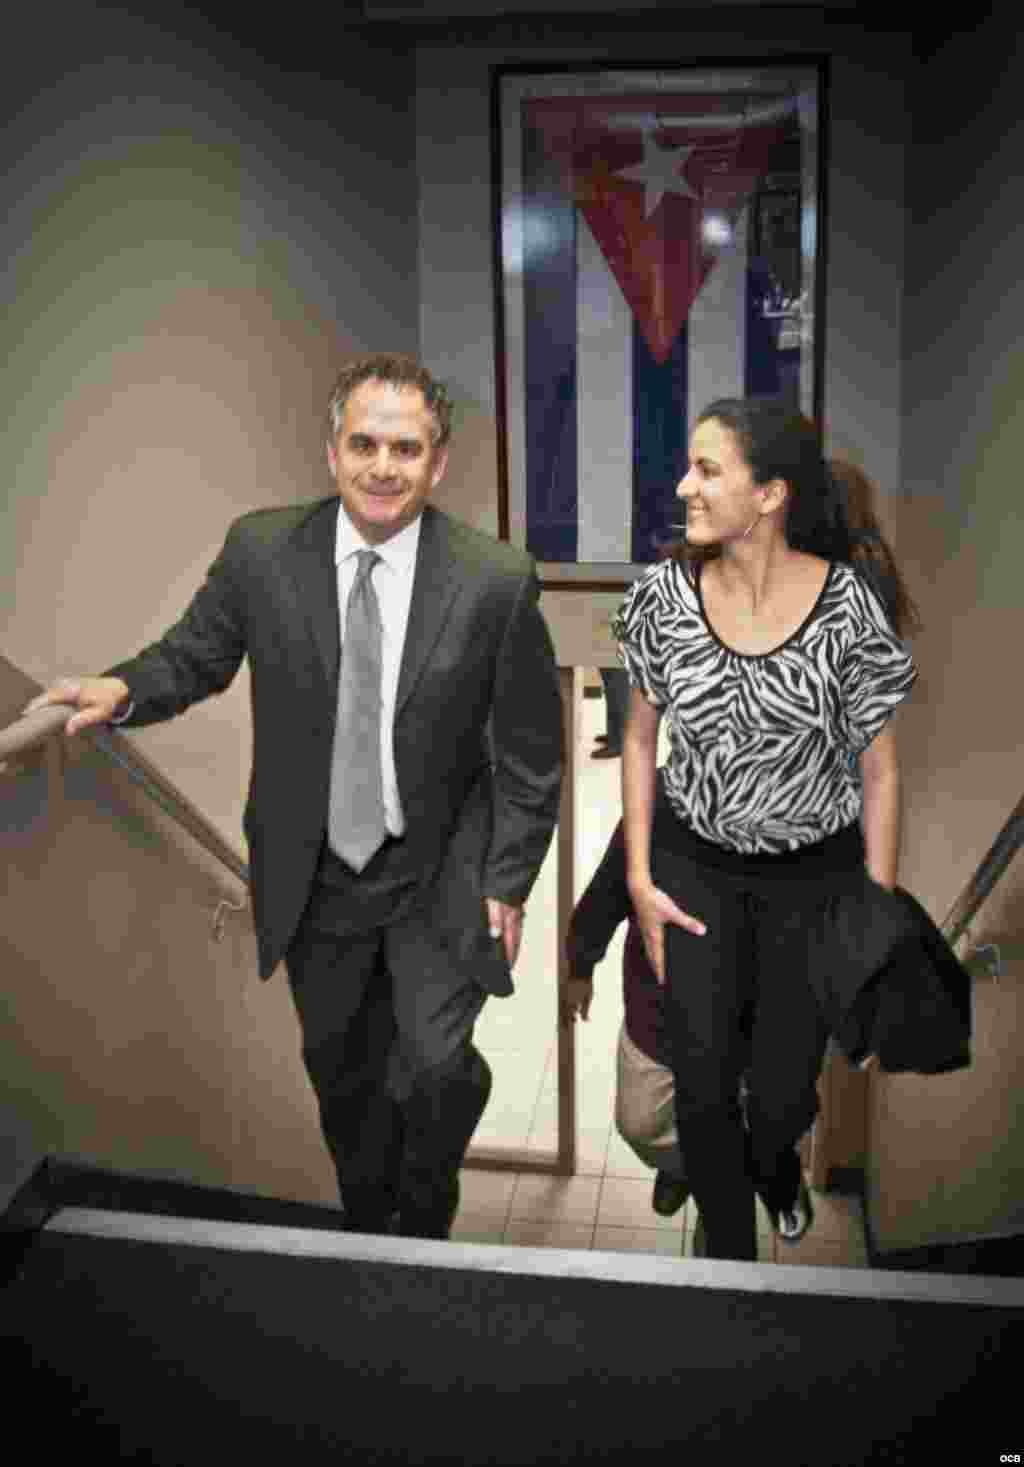 Rosa María Payá makes her way upstairs at the Martis accompanied by OCB Director, Carlos Garcia-Perez